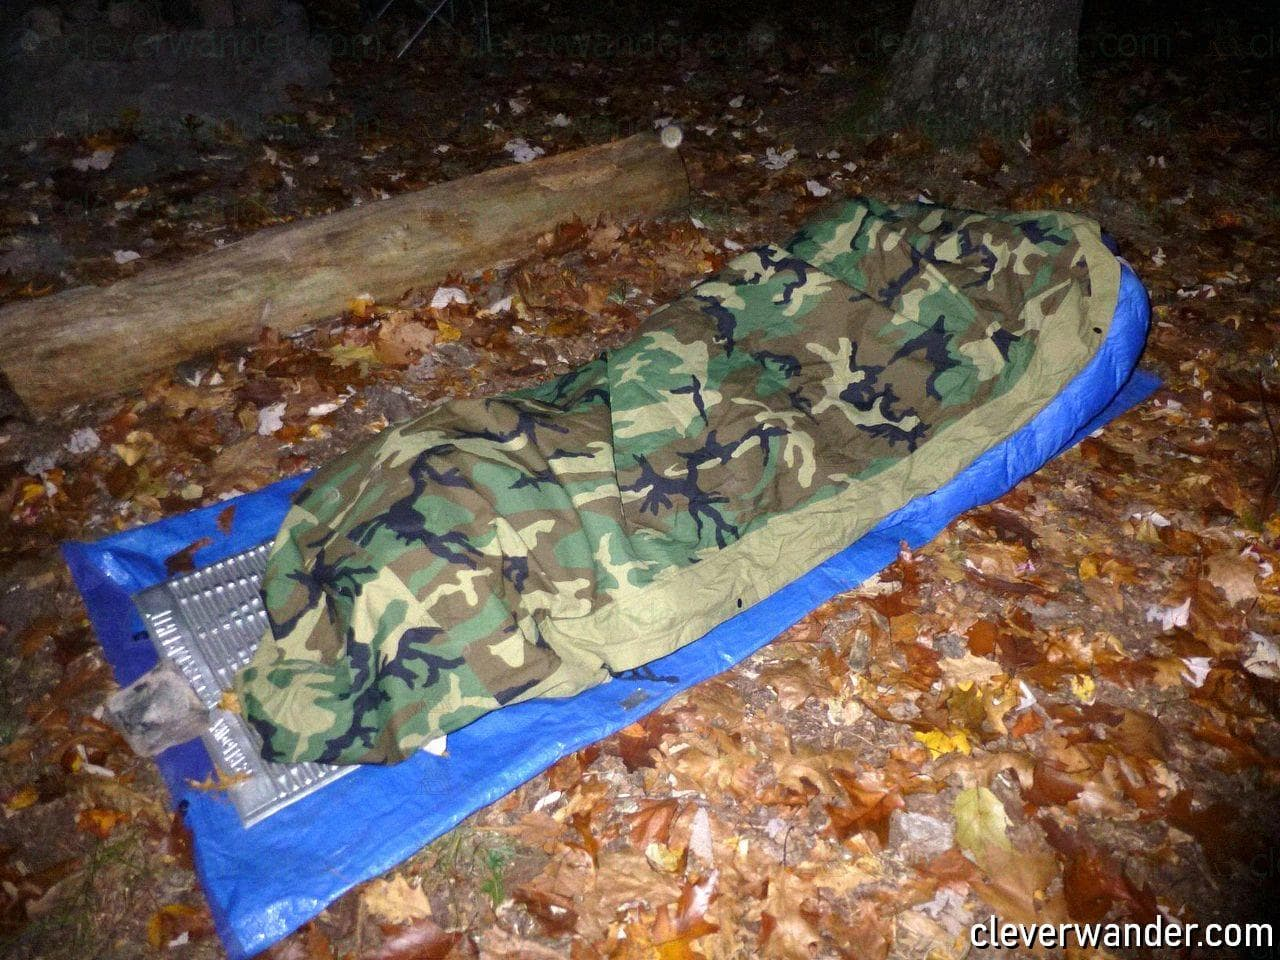 Tennier Woodland Camouflage Bivy Cover - image review 2